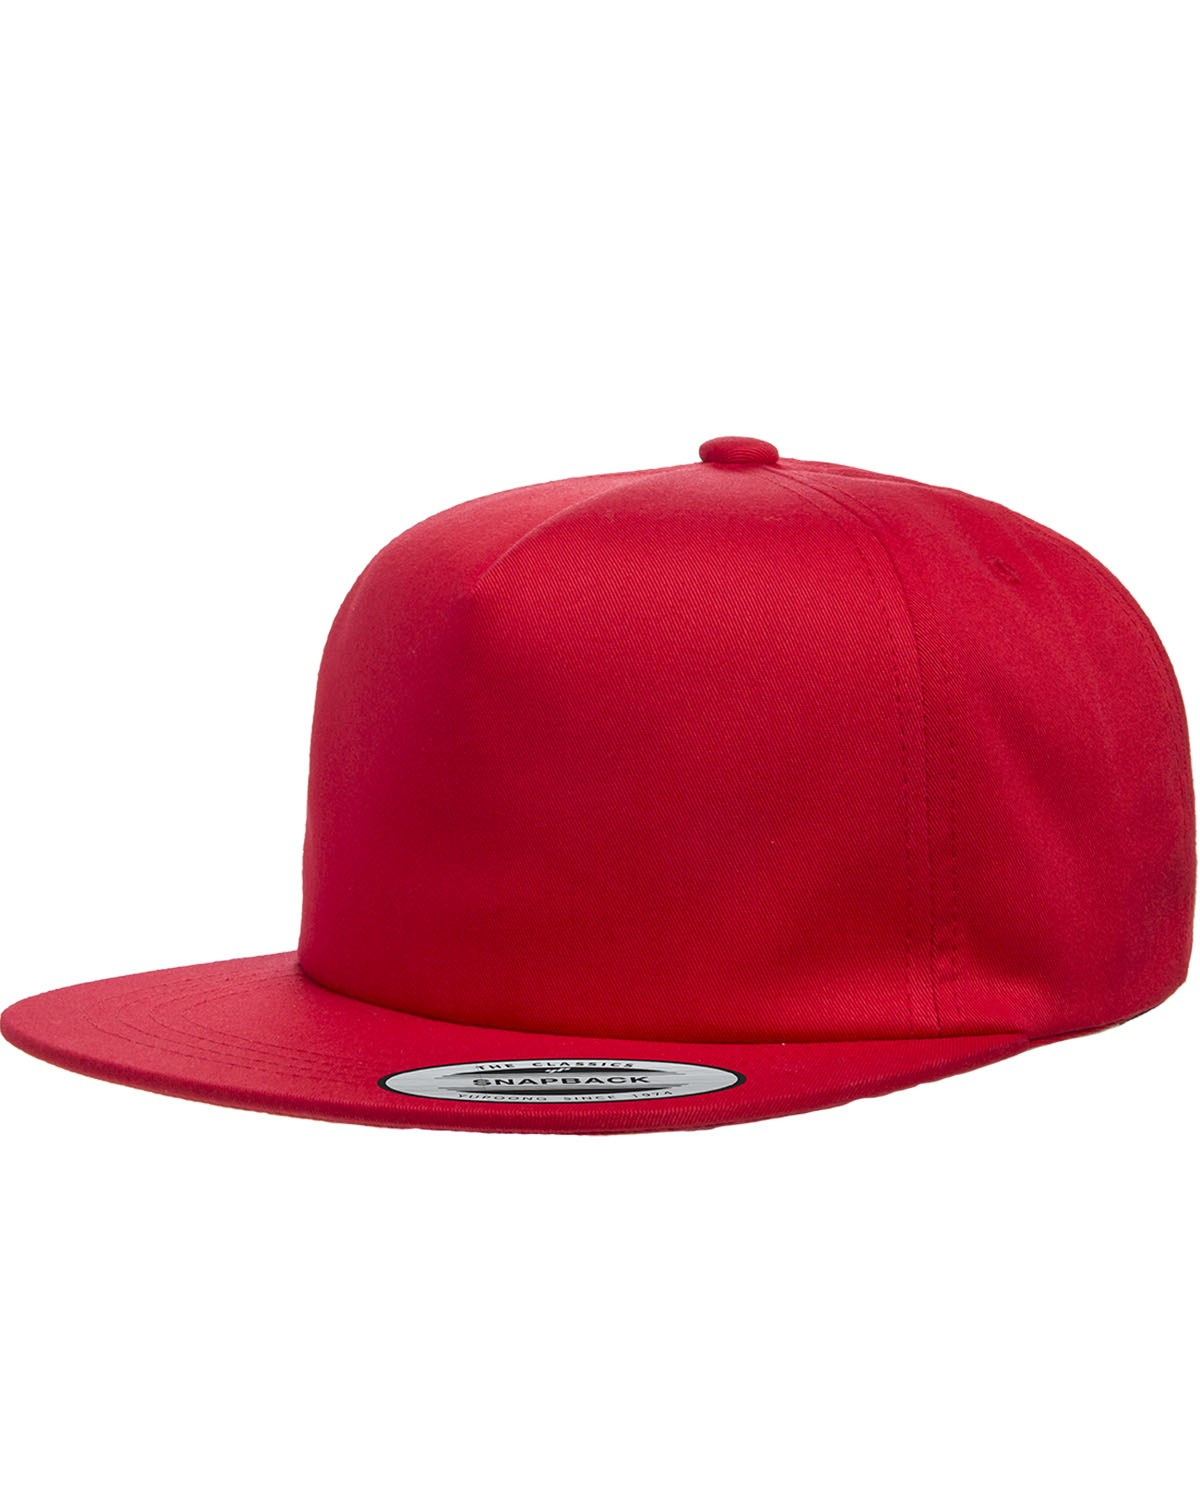 Y6502 Yupoong RED